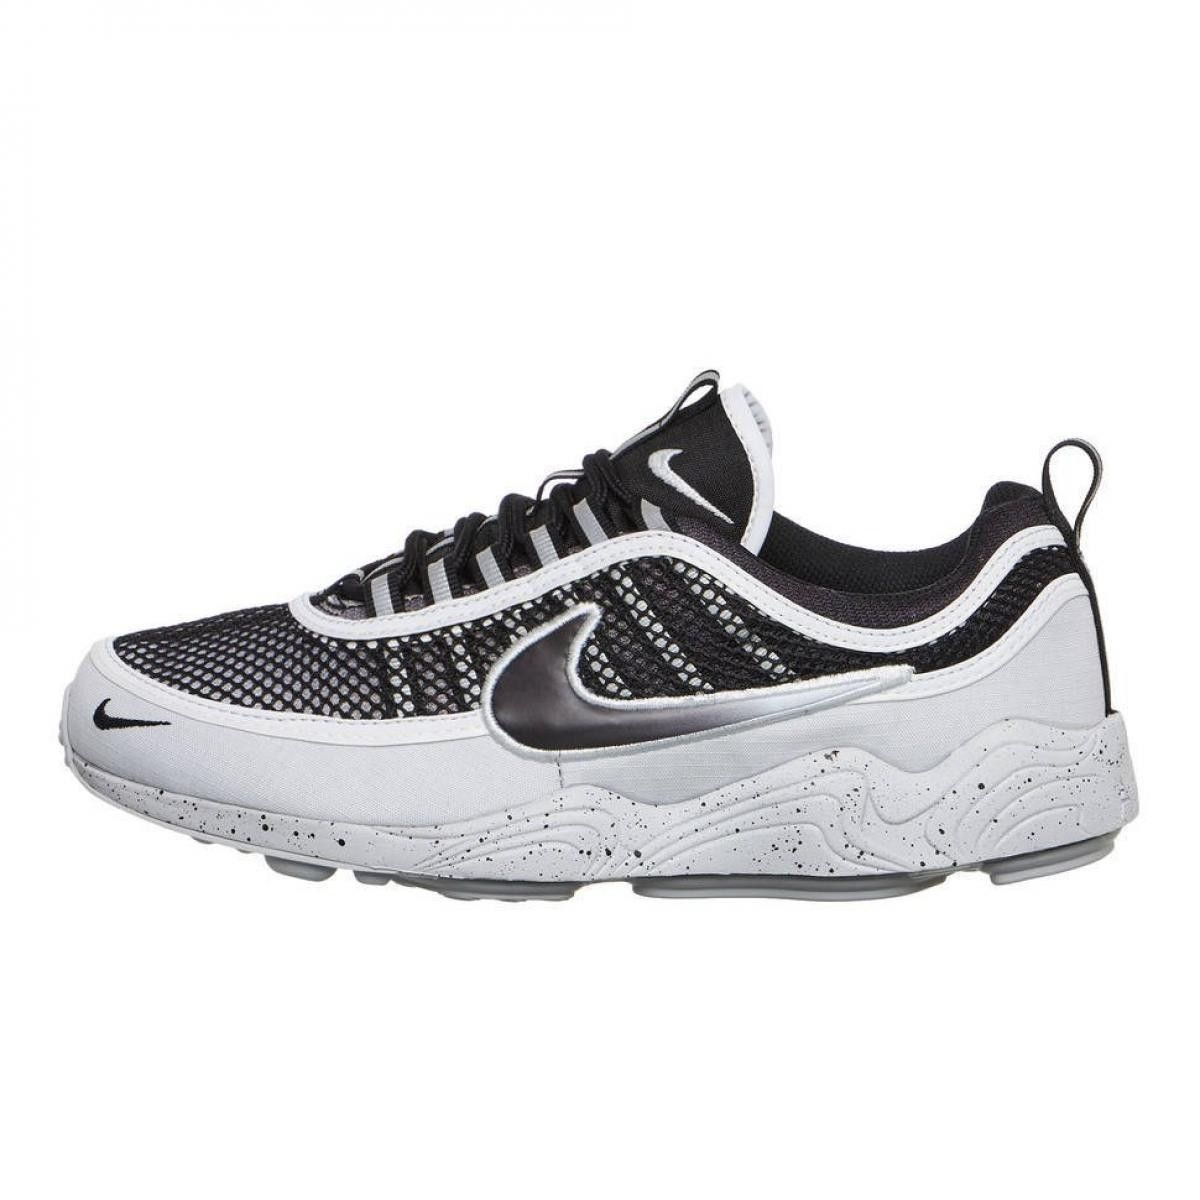 sports shoes 5fe7b dc2ae Basket Nike Air Zoom Spiridon 16 - 926955-004 - Taille   40 41